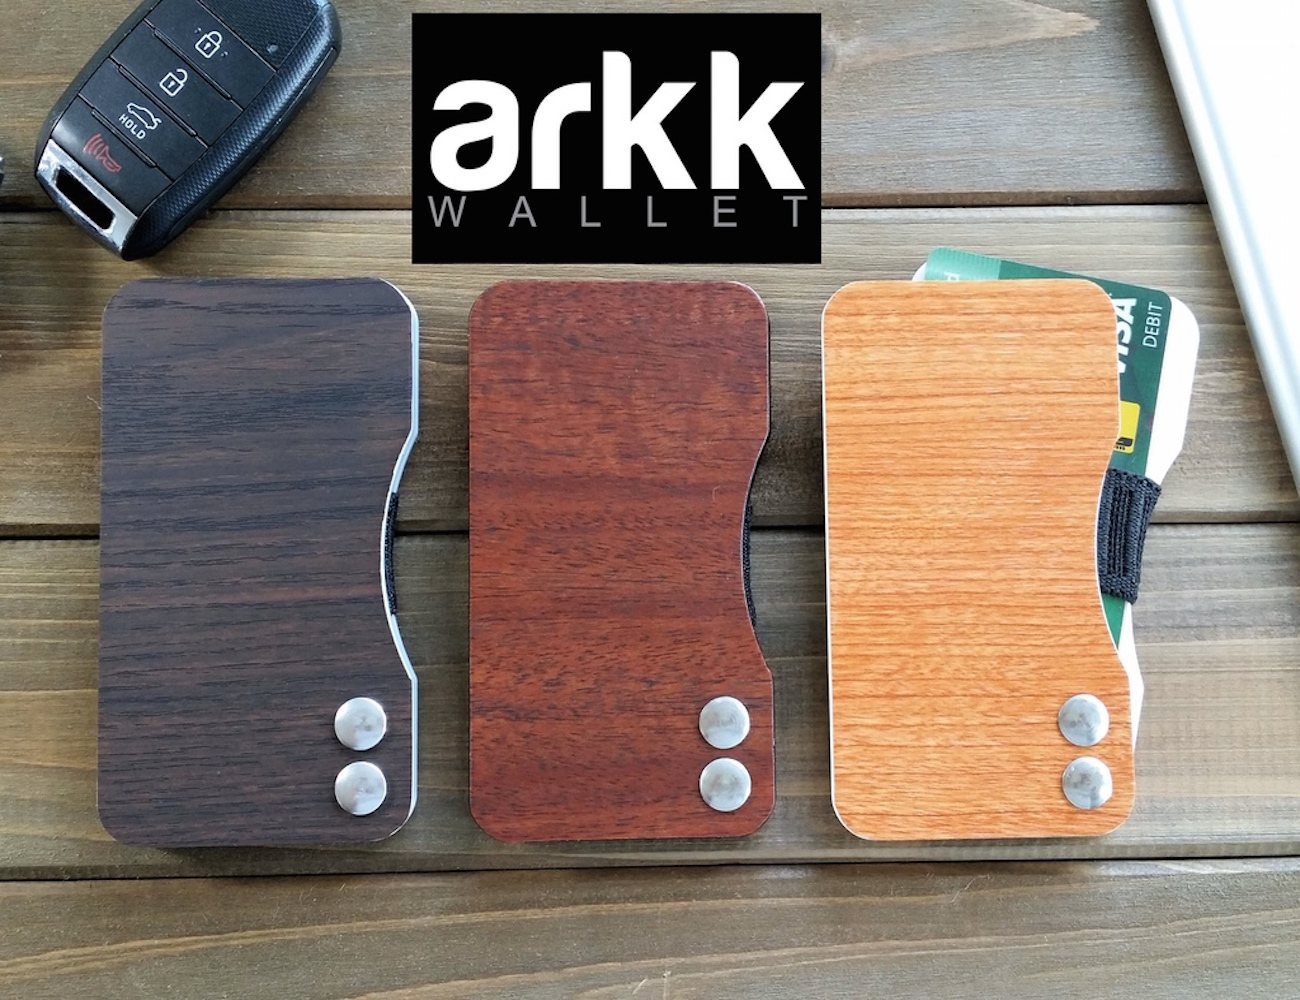 Arkk+Wallet+%26%238211%3B+The+Sleekest+RFID+Blocking+Minimalist+Wallet+In+The+World